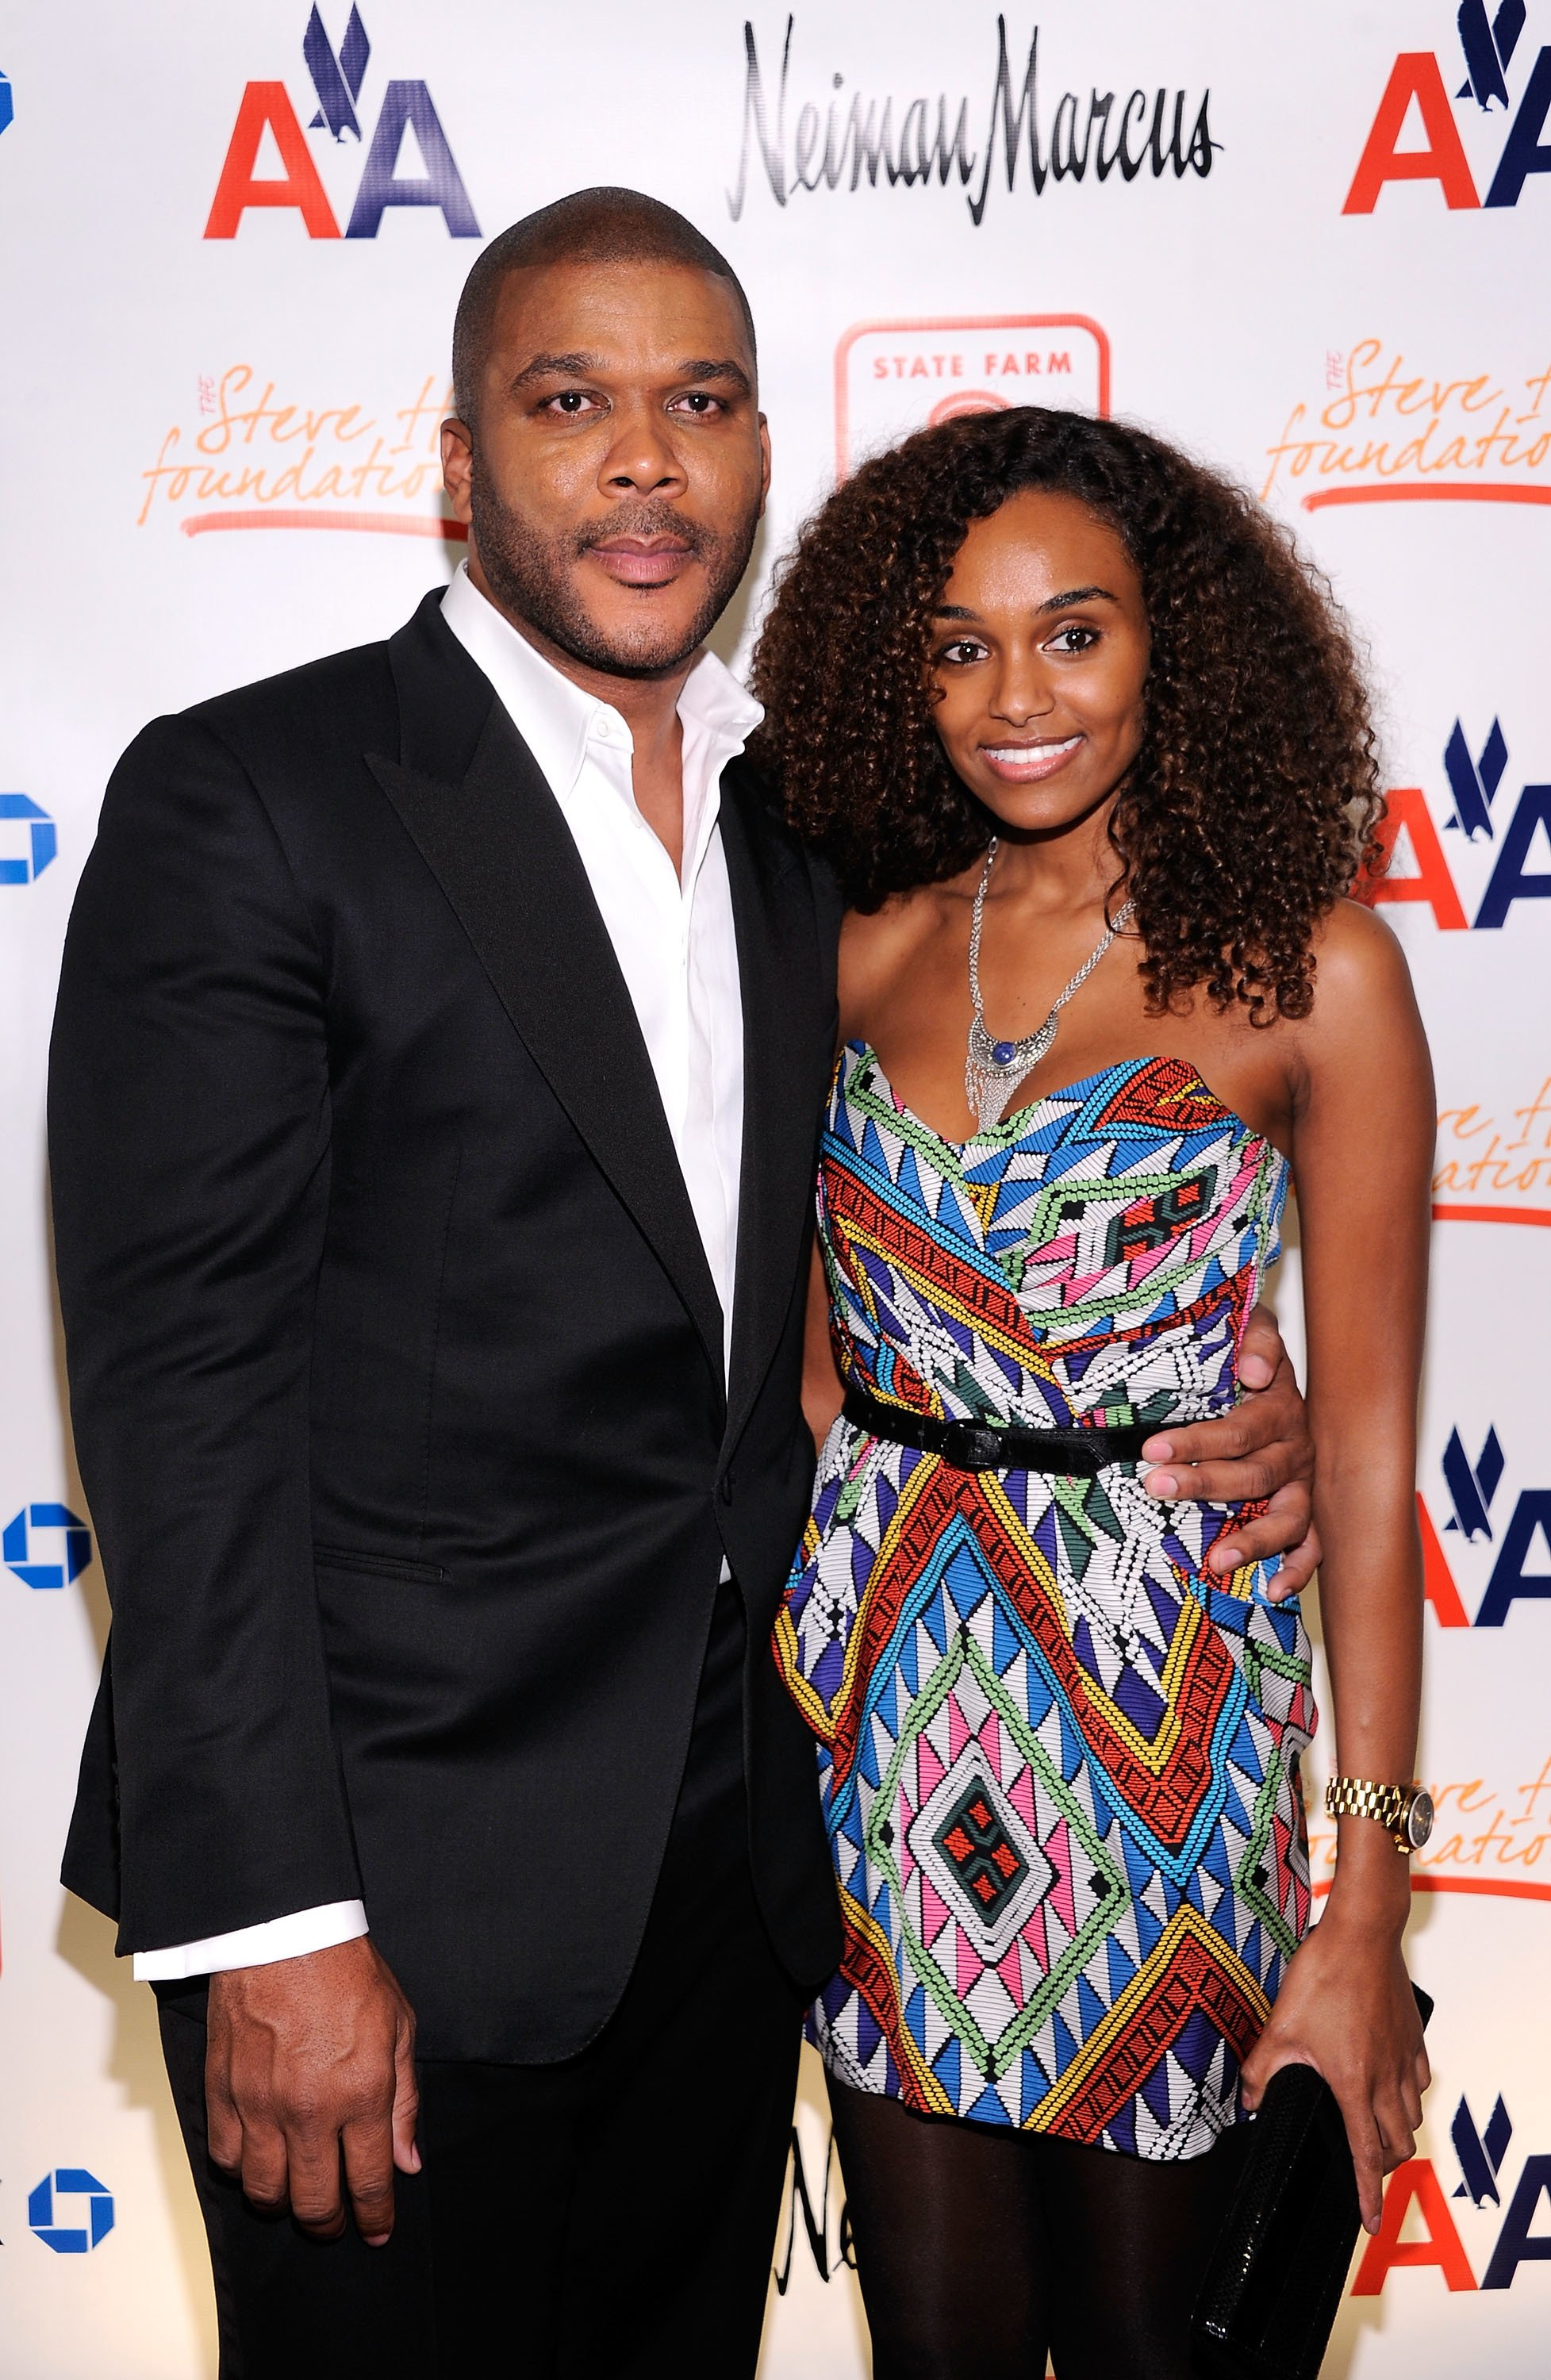 Tyler Perry and Gelila Bekele at the 2nd annual Steve Harvey Foundation Gala in 2011 in New York | Source: Getty Images